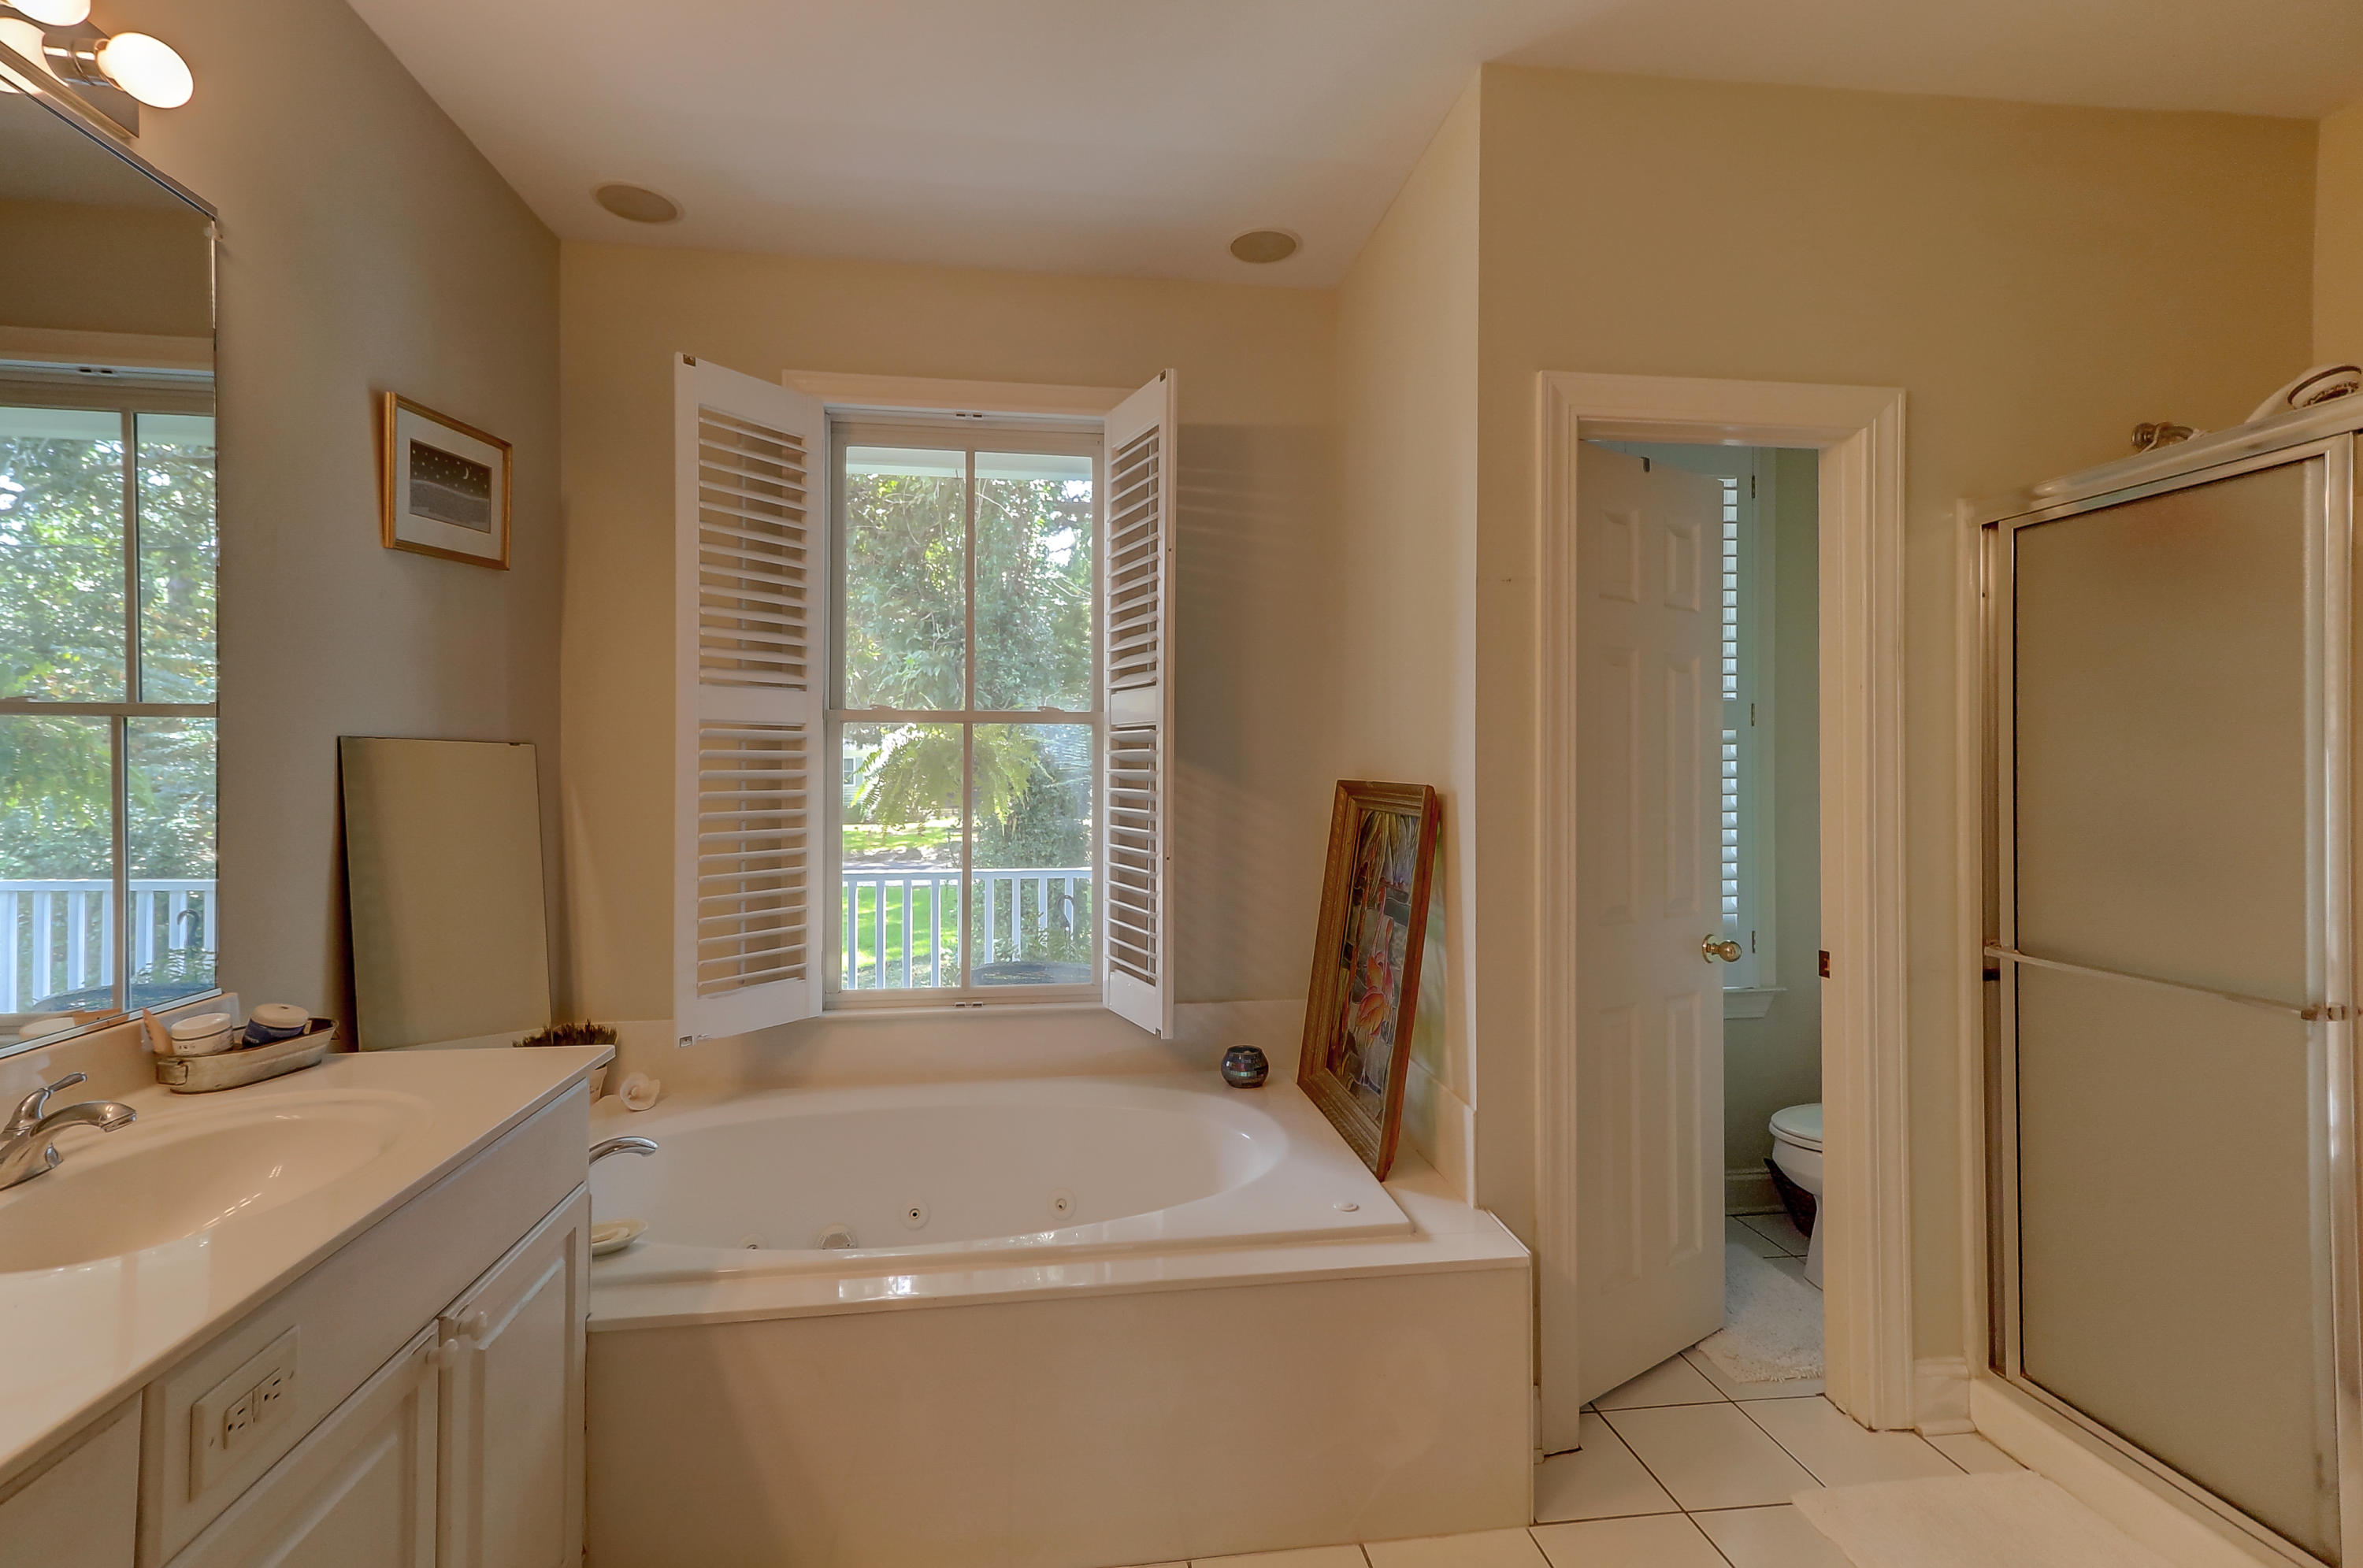 Riverland Terrace Homes For Sale - 2054 Wappoo Hall, Charleston, SC - 0